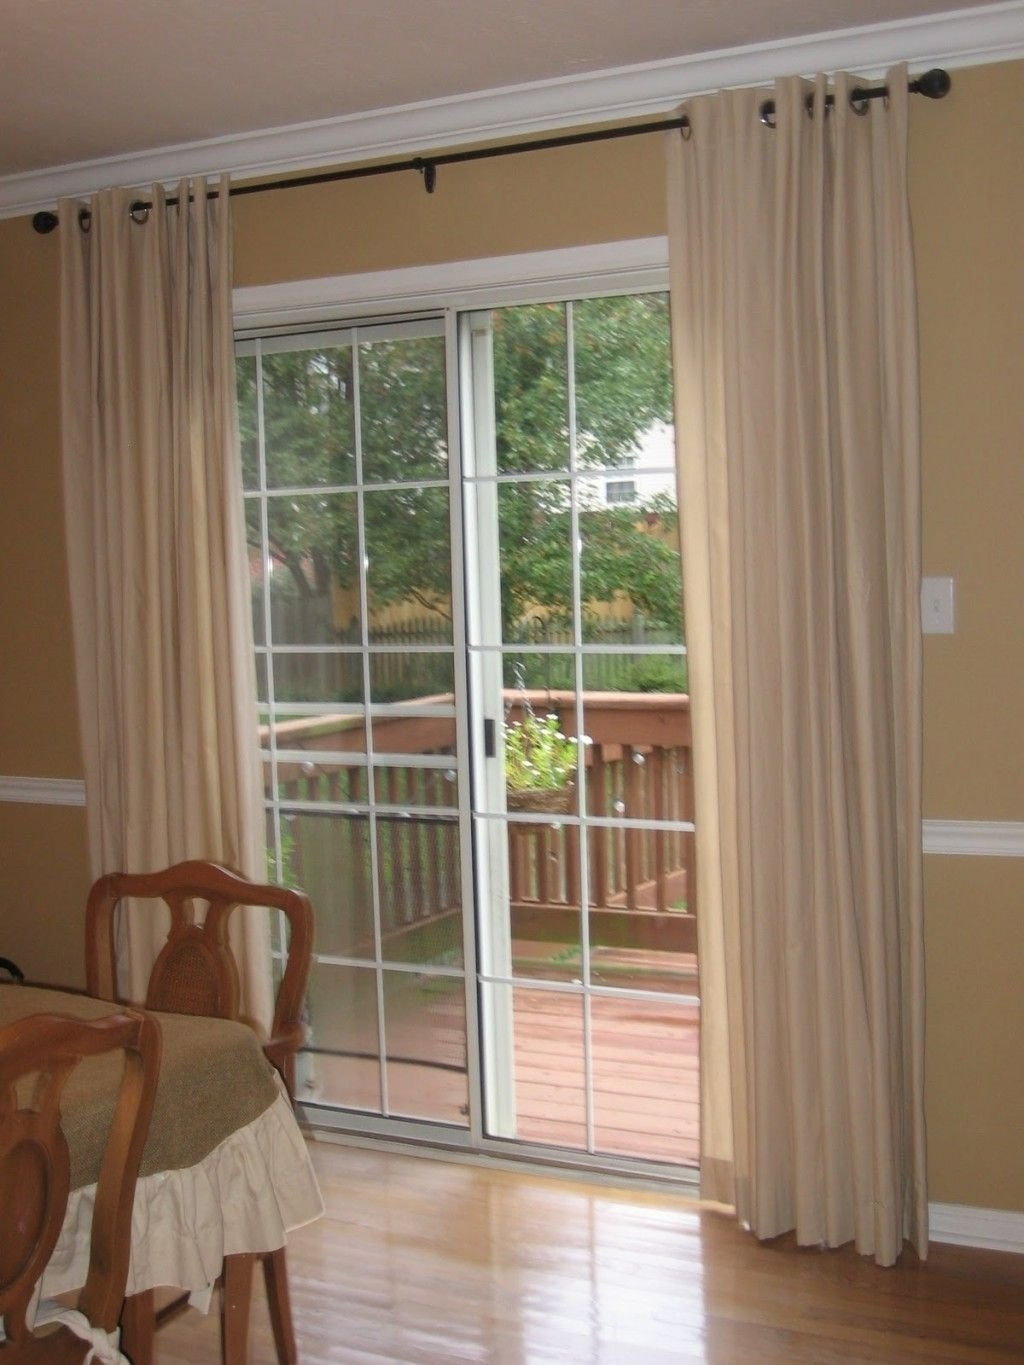 10 Attractive Curtains For Sliding Glass Doors Ideas unbelievable decorating ideas sliding glass door curtains pic for 2020